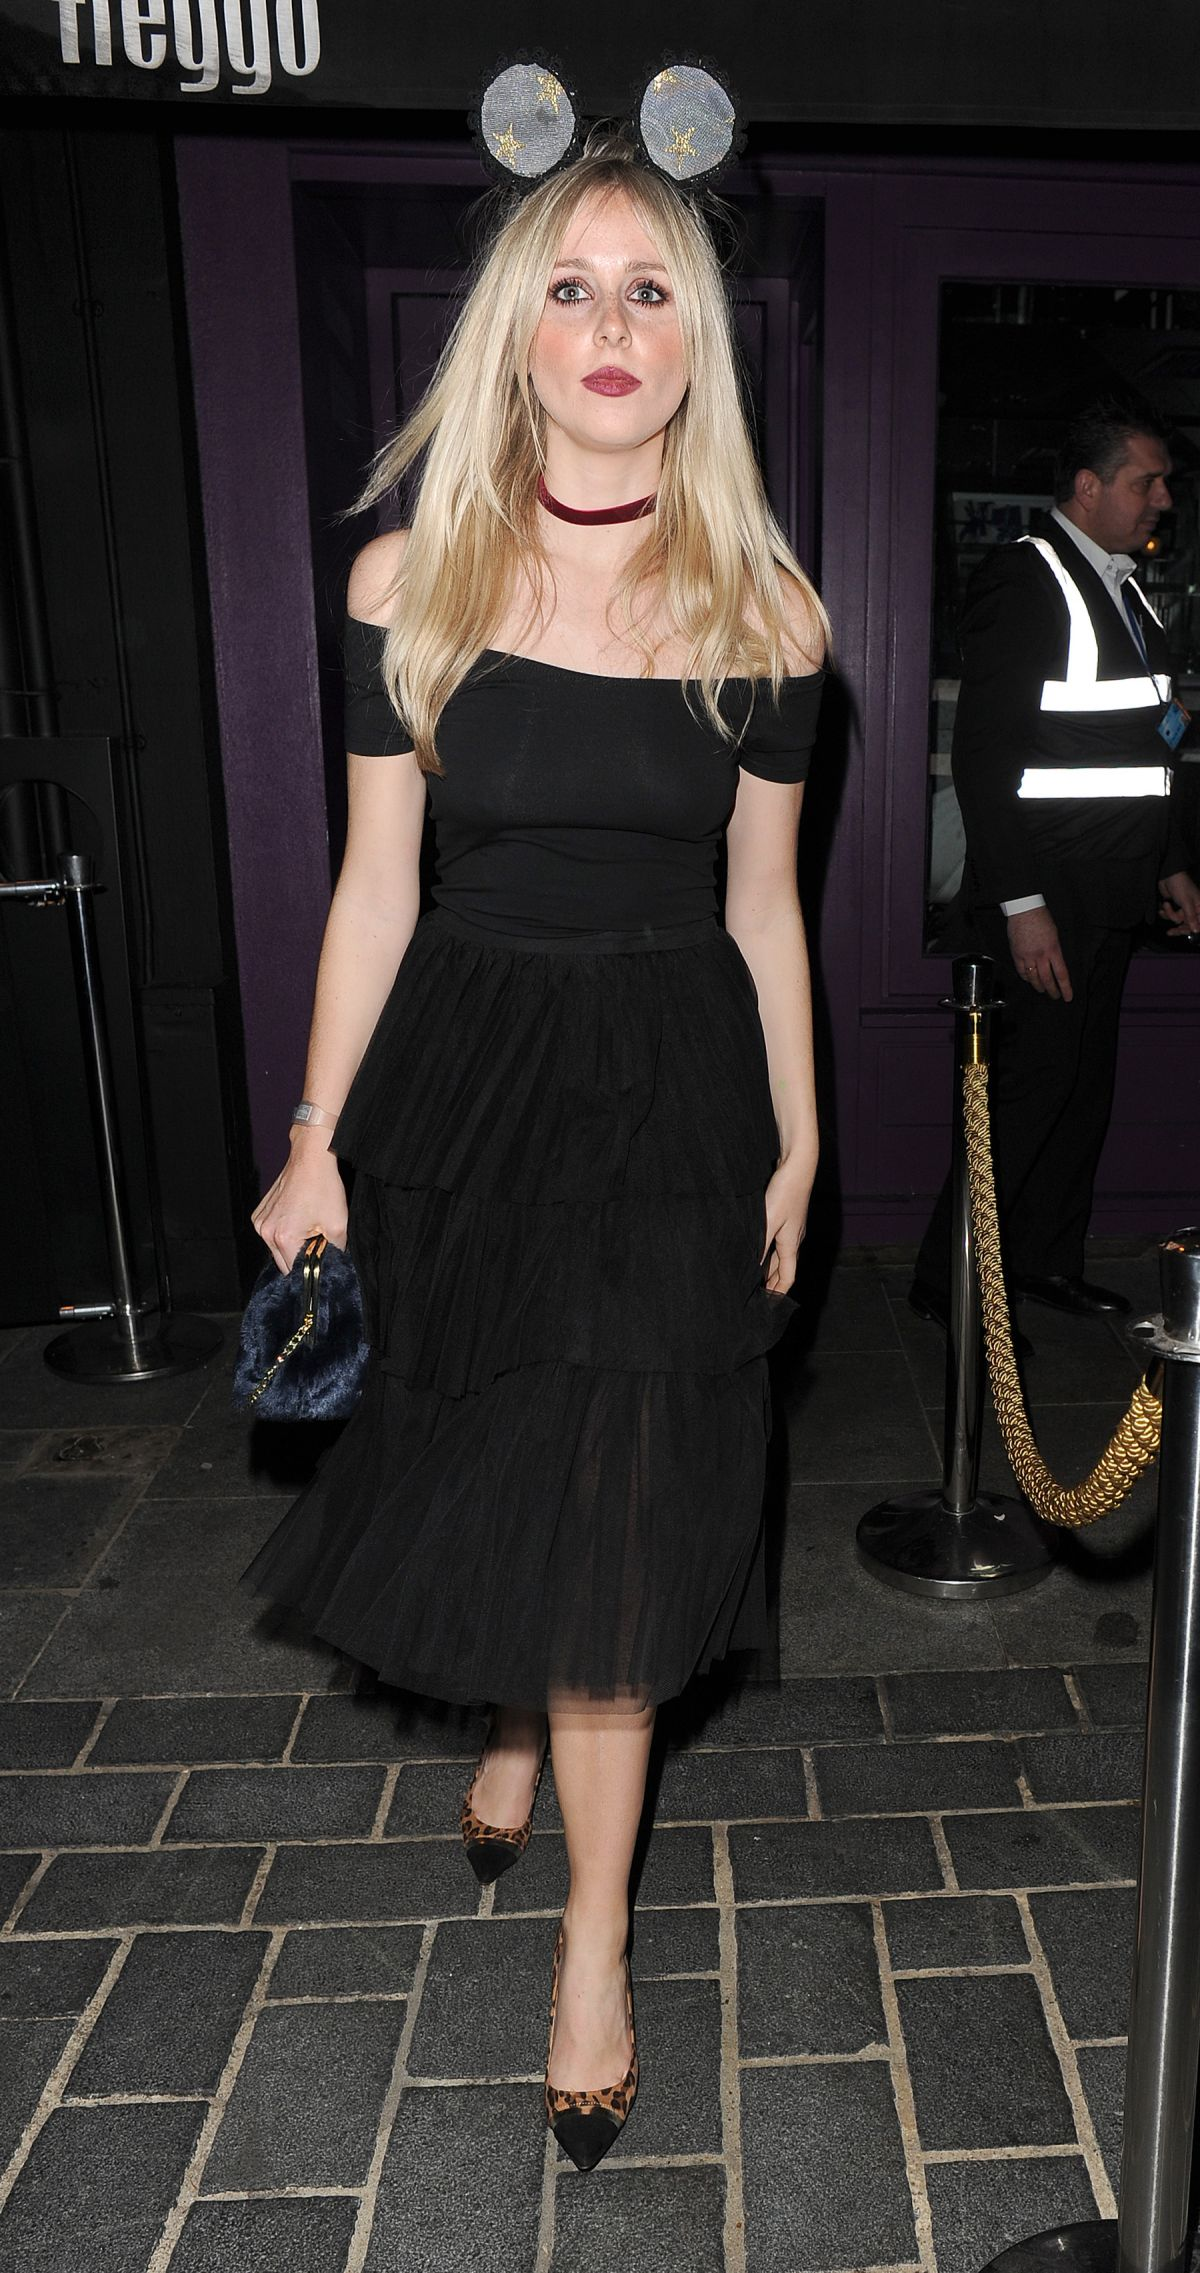 DIANA VICKERS at The Cuckoo Club Halloween Party in London 10/28/2015